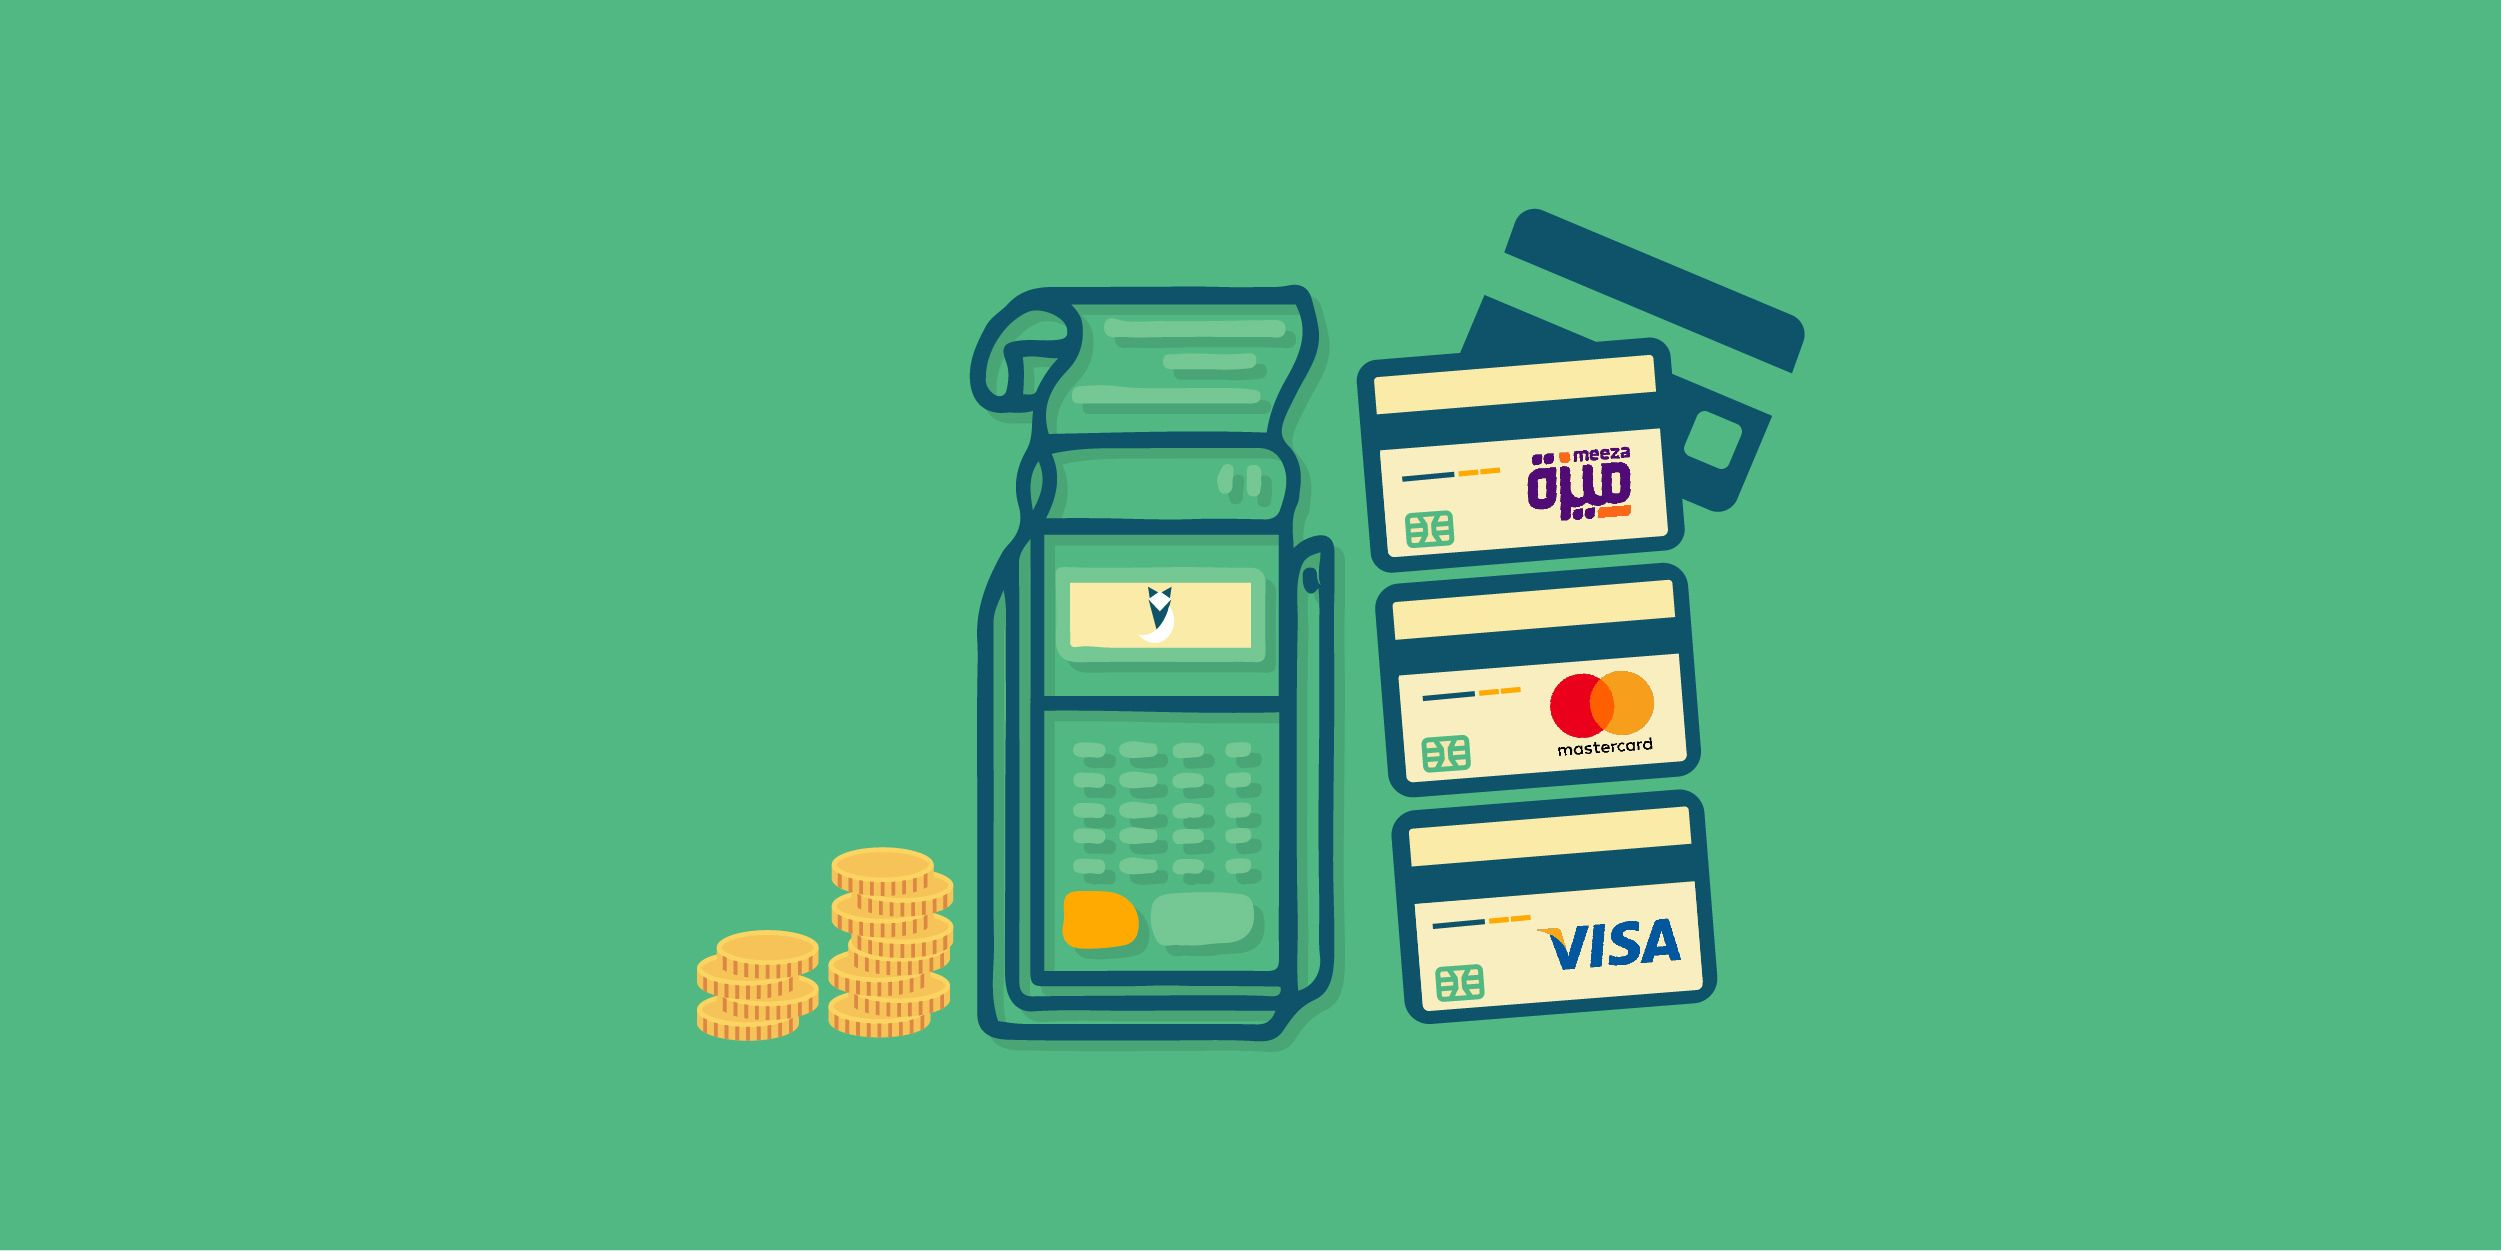 What's the difference between Visa, Master Card, and Meeza?